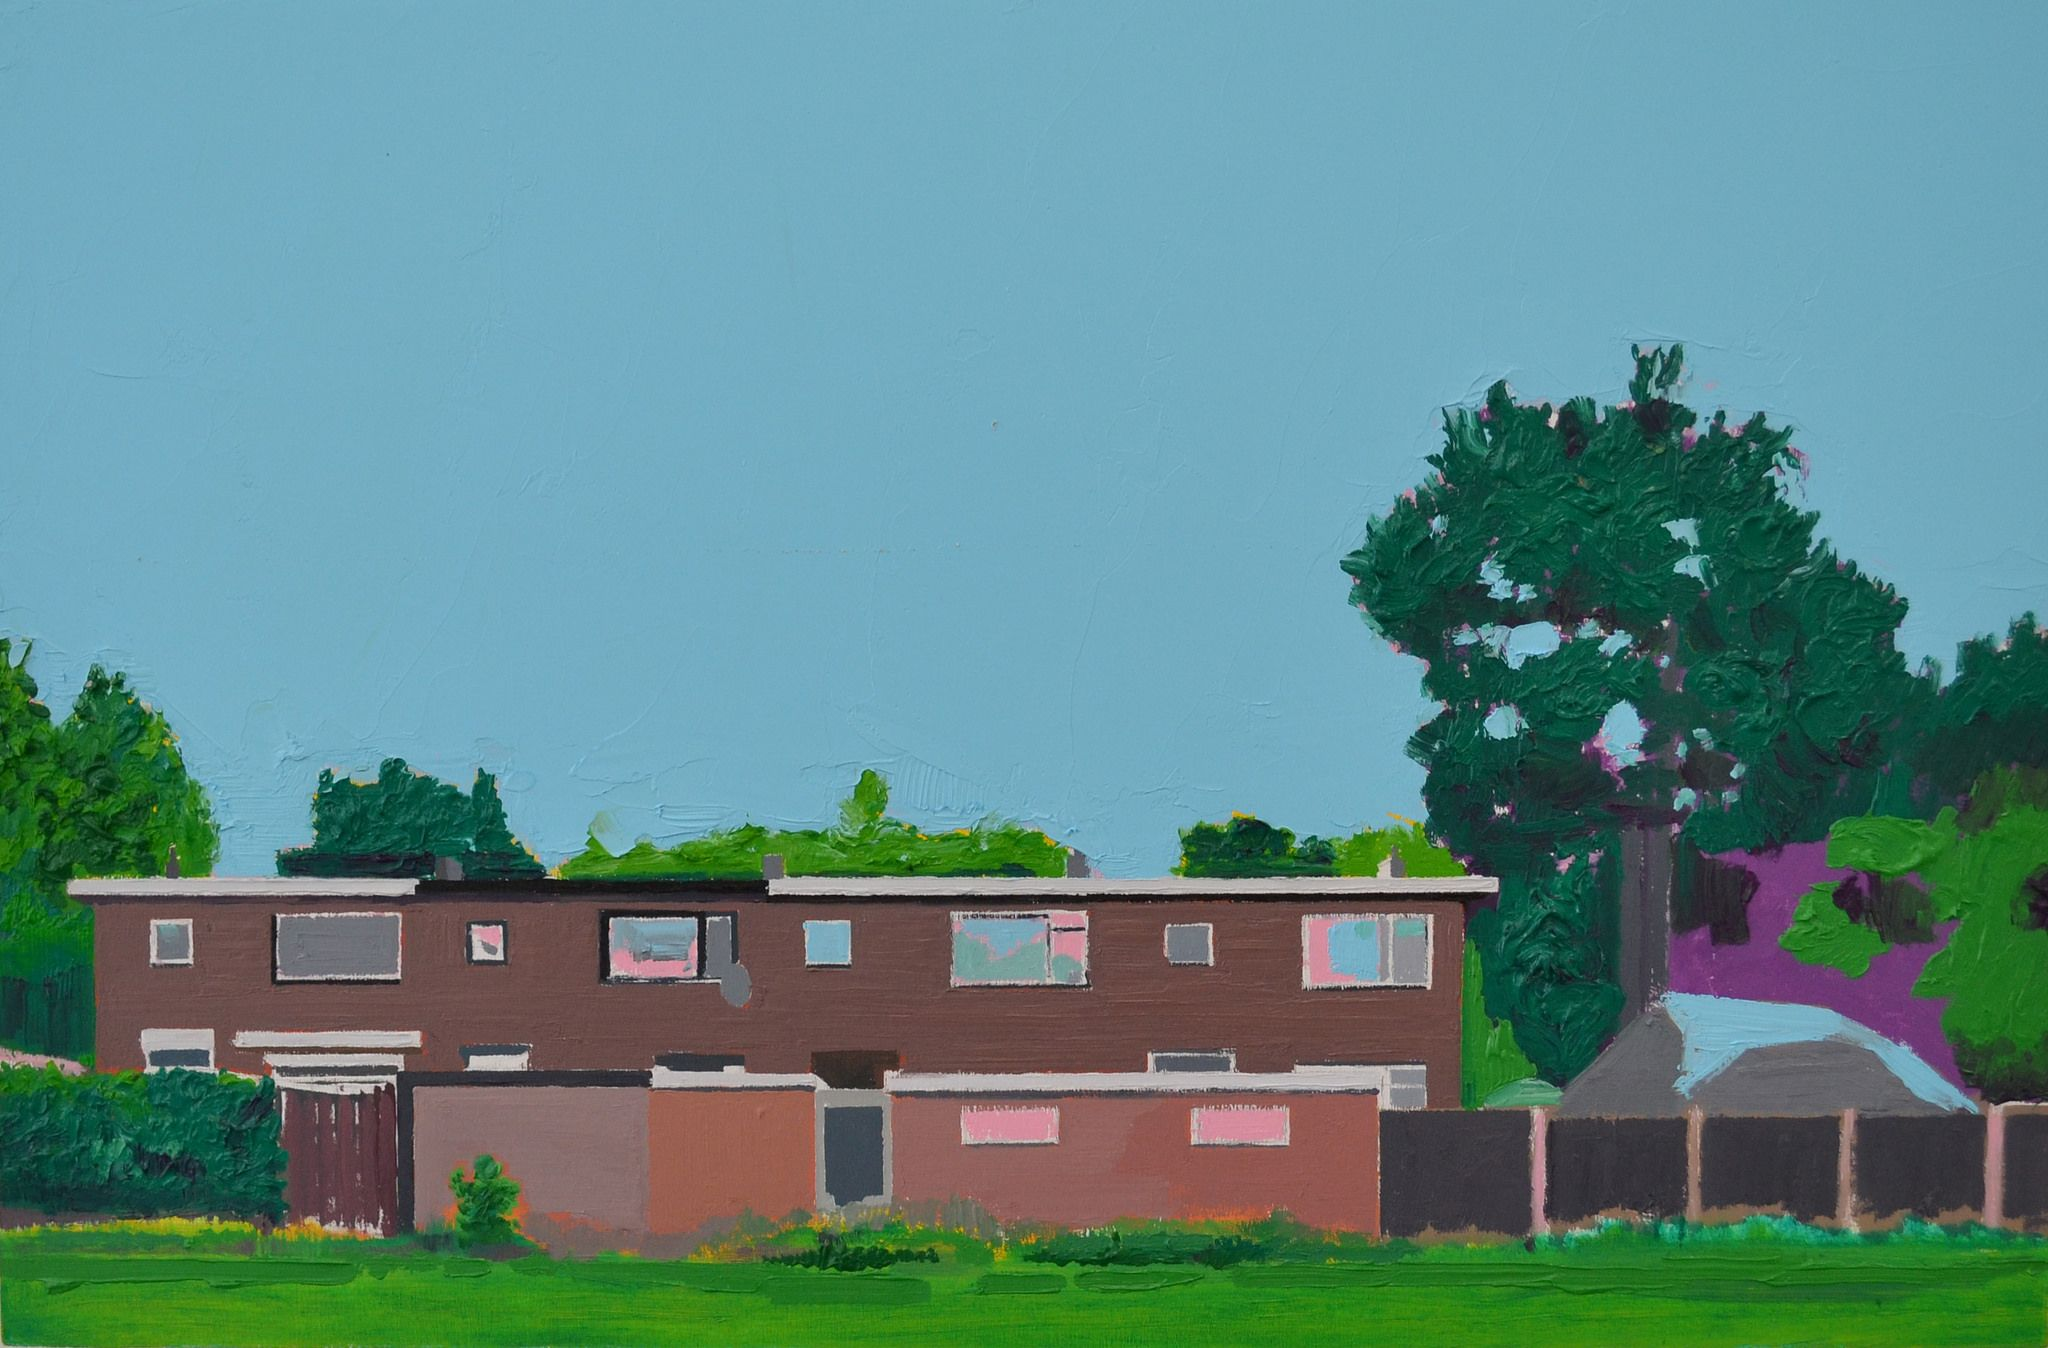 Albert Zwaan - Townhomes in Krispijn, 2017. Oil on wood, size: 40x60cm | www.albertzwaan.nl